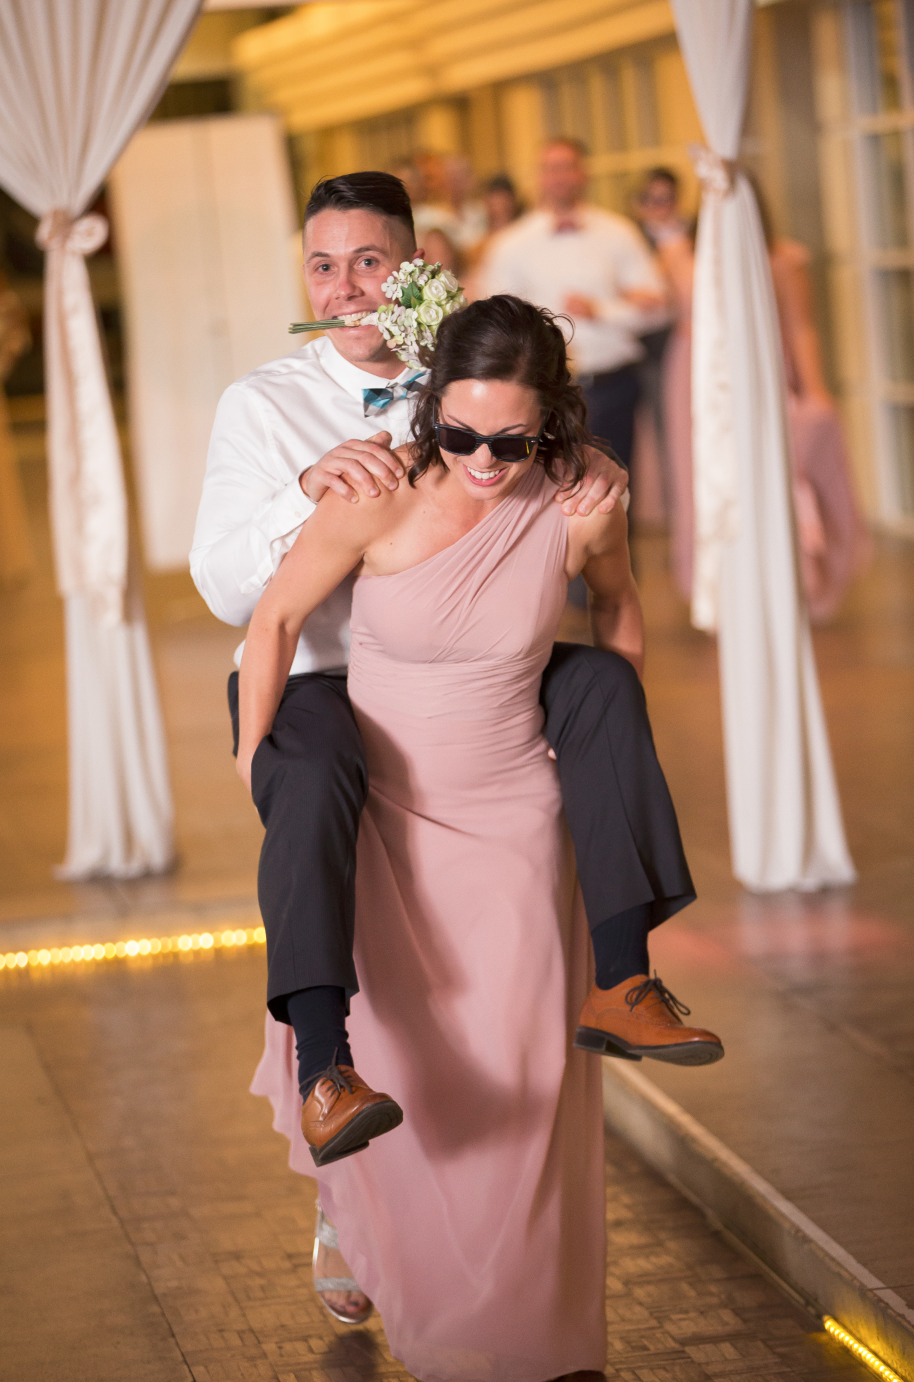 How Your DJ Could Ruin Your Wedding Photos + Video — Better Together